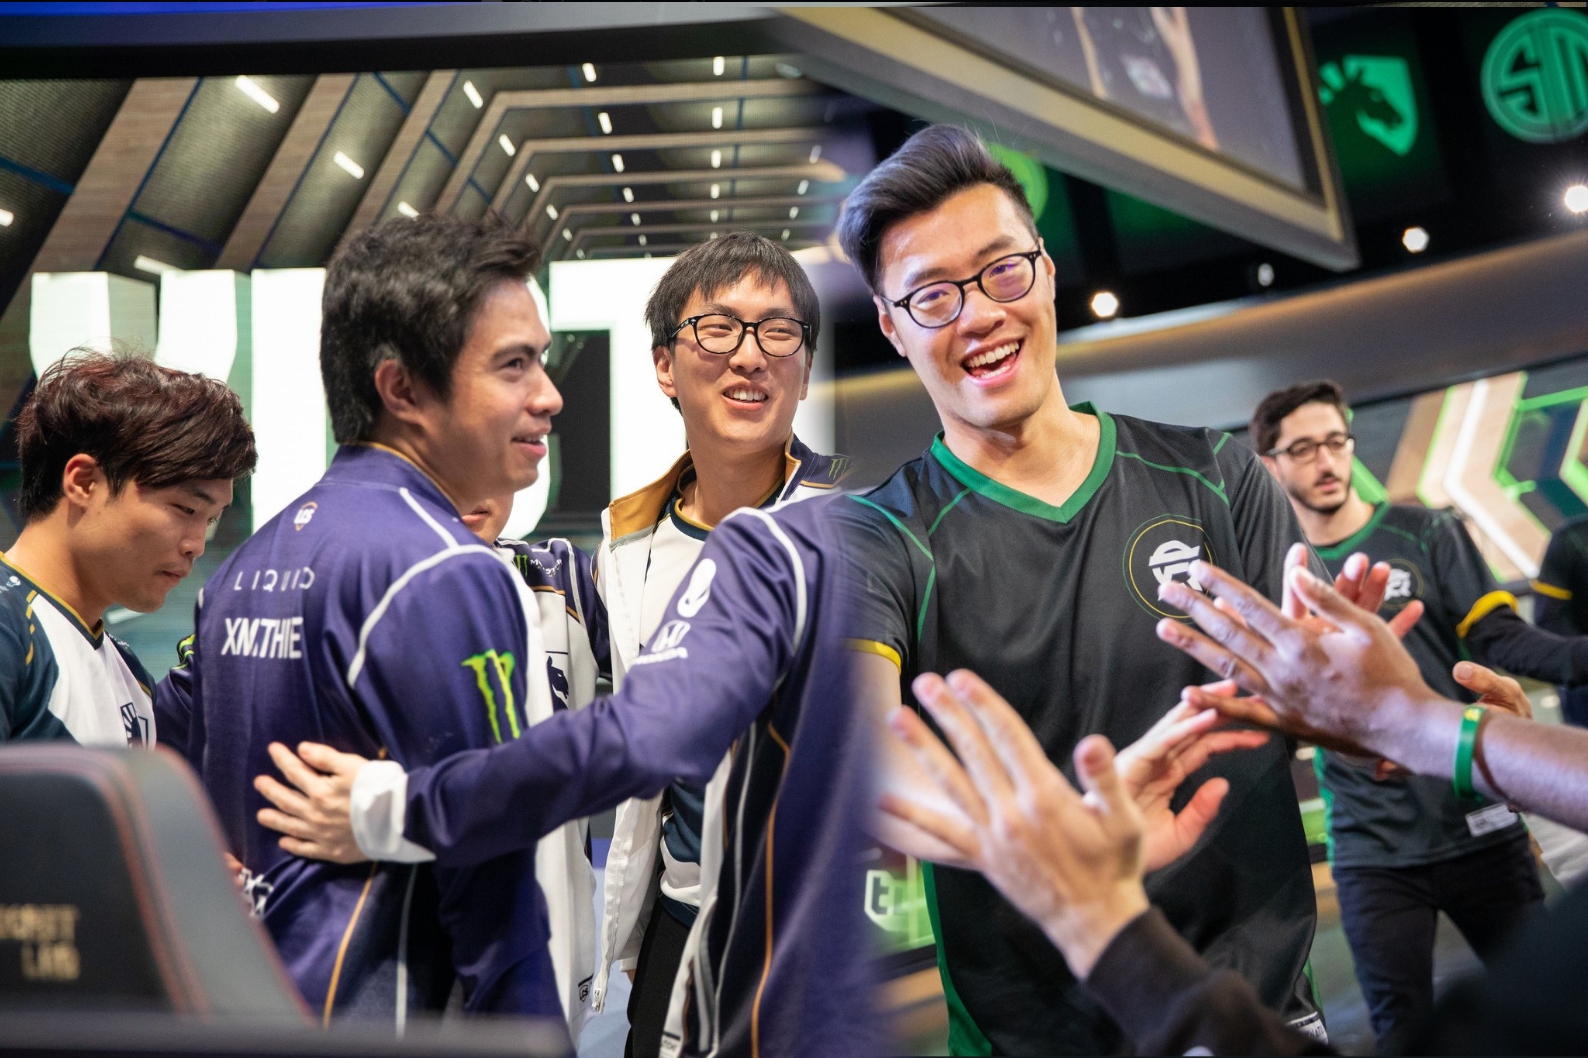 League of Legends: Team Liquid selects FlyQuest as LCS Semifinals